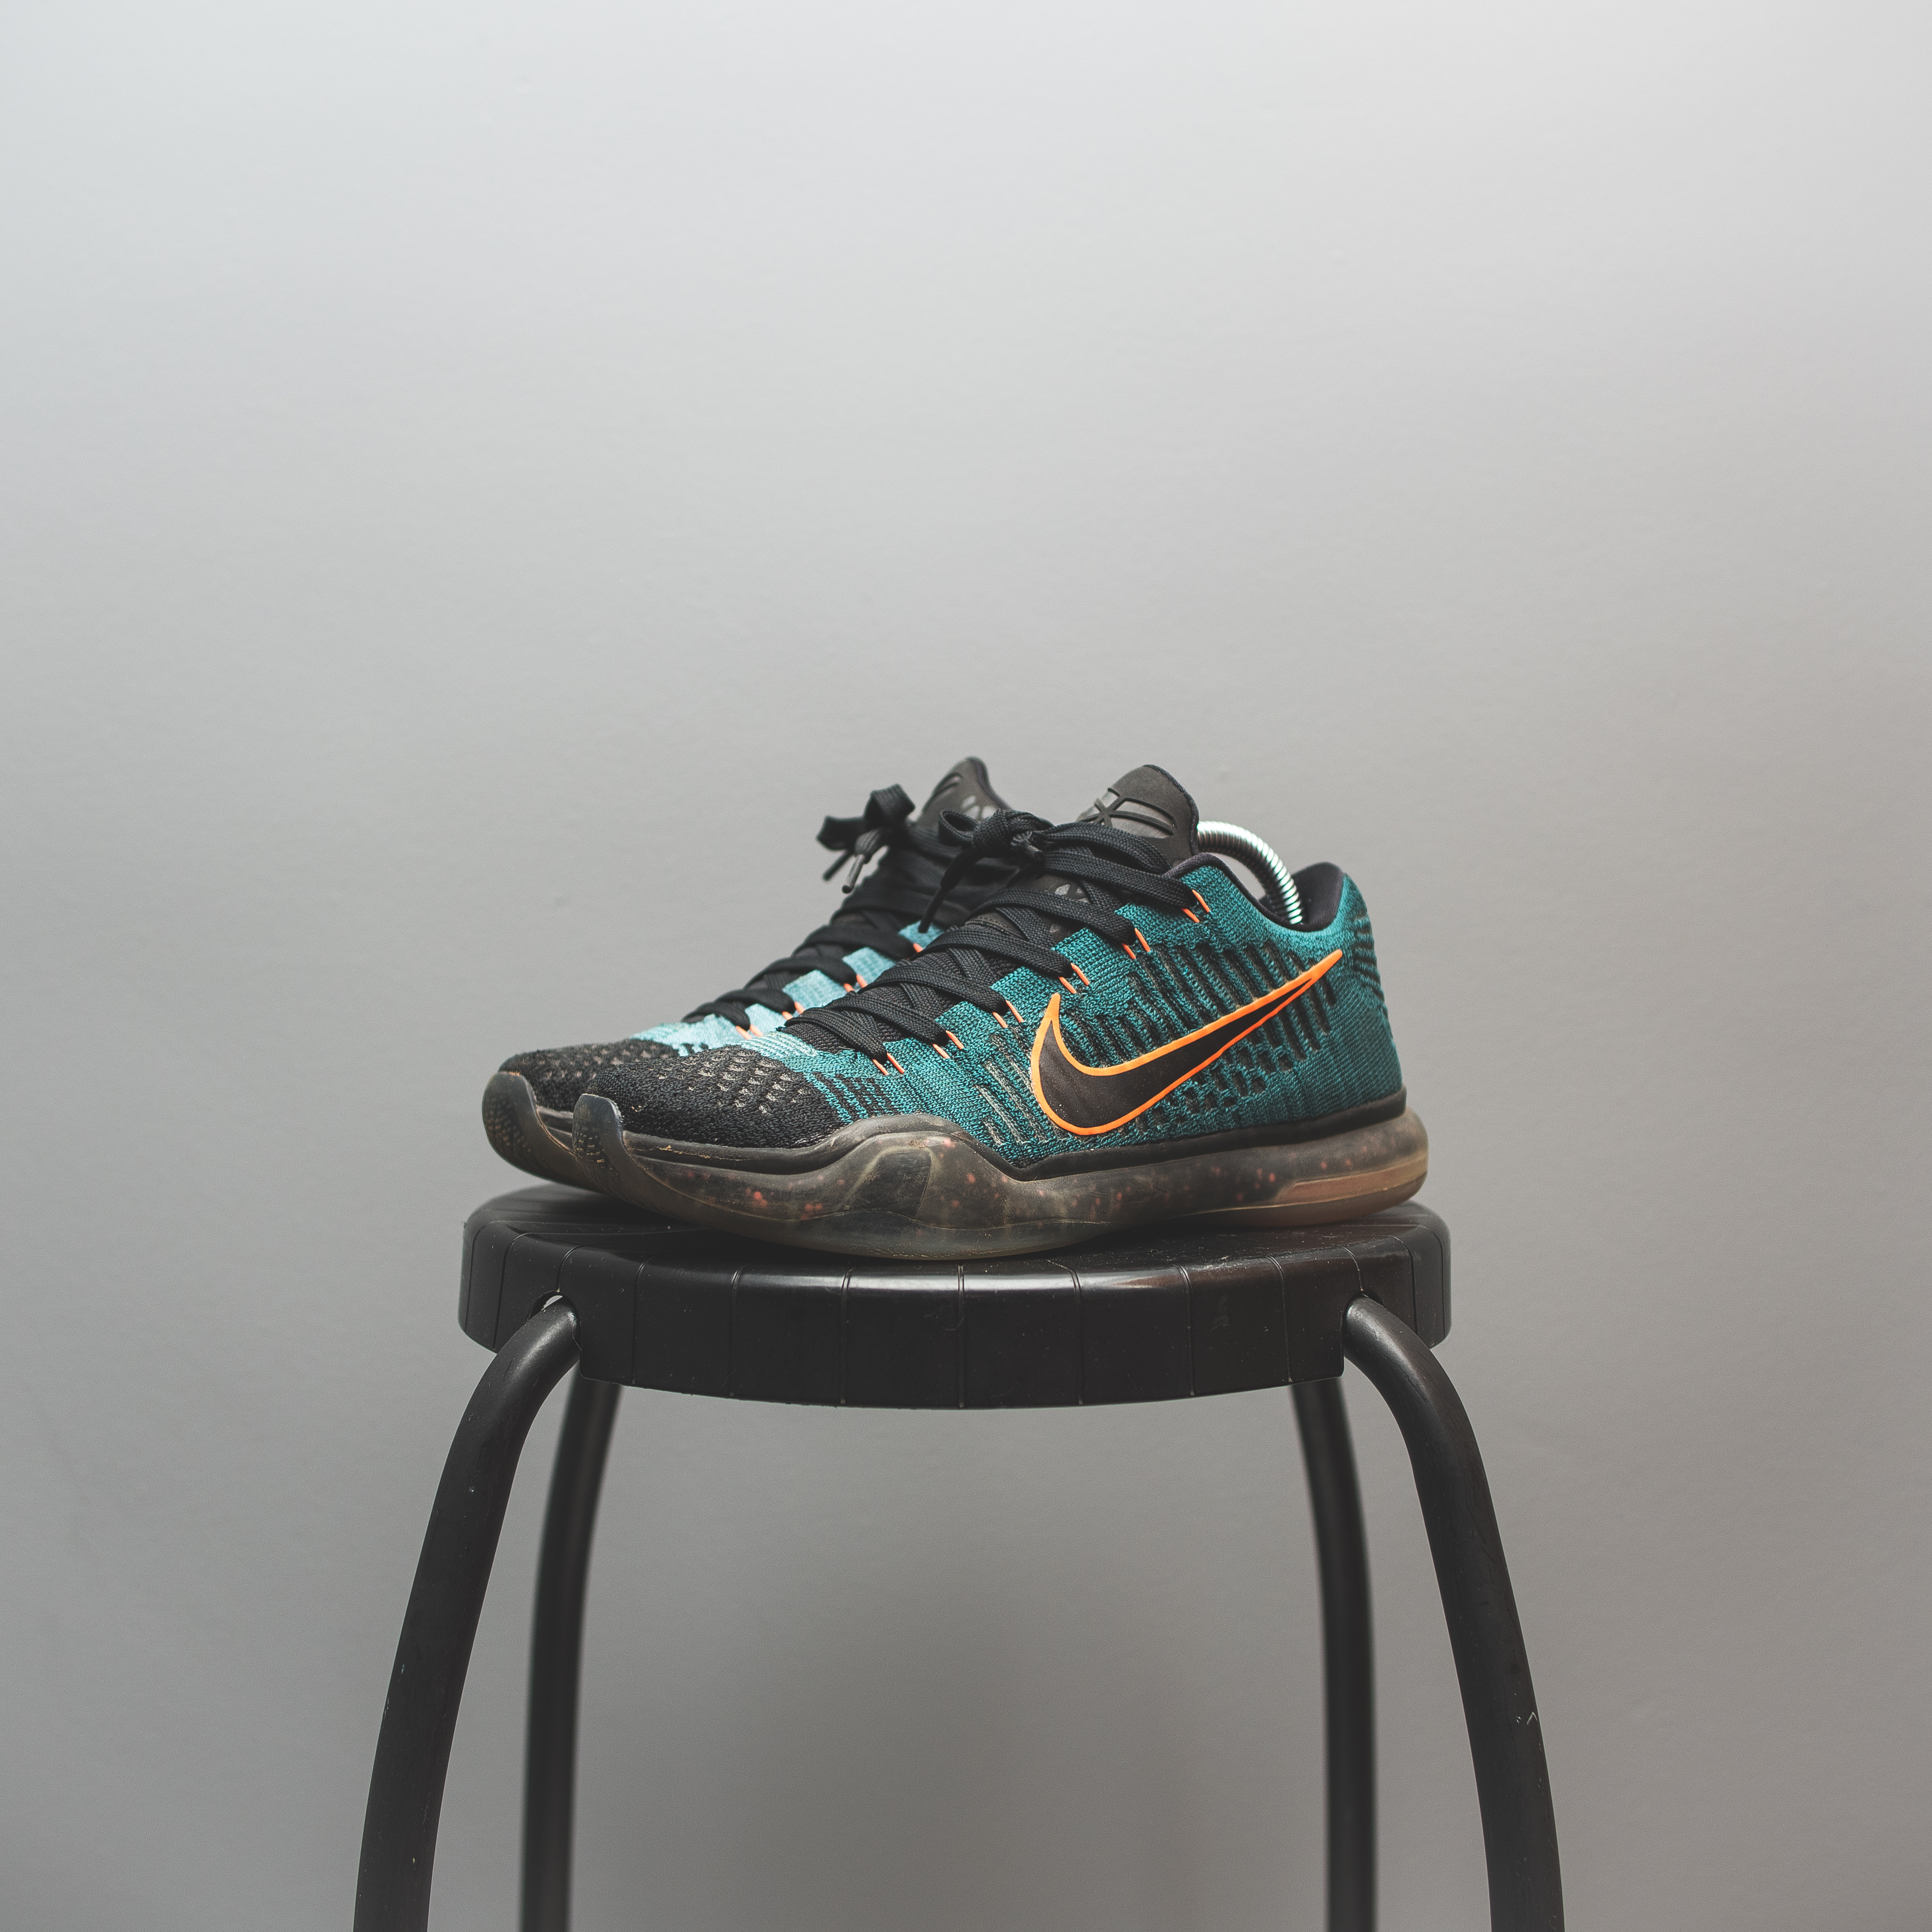 uk availability 2acd3 4985d Nike ×. Kobe 10 Elite Low Drill Sergeant